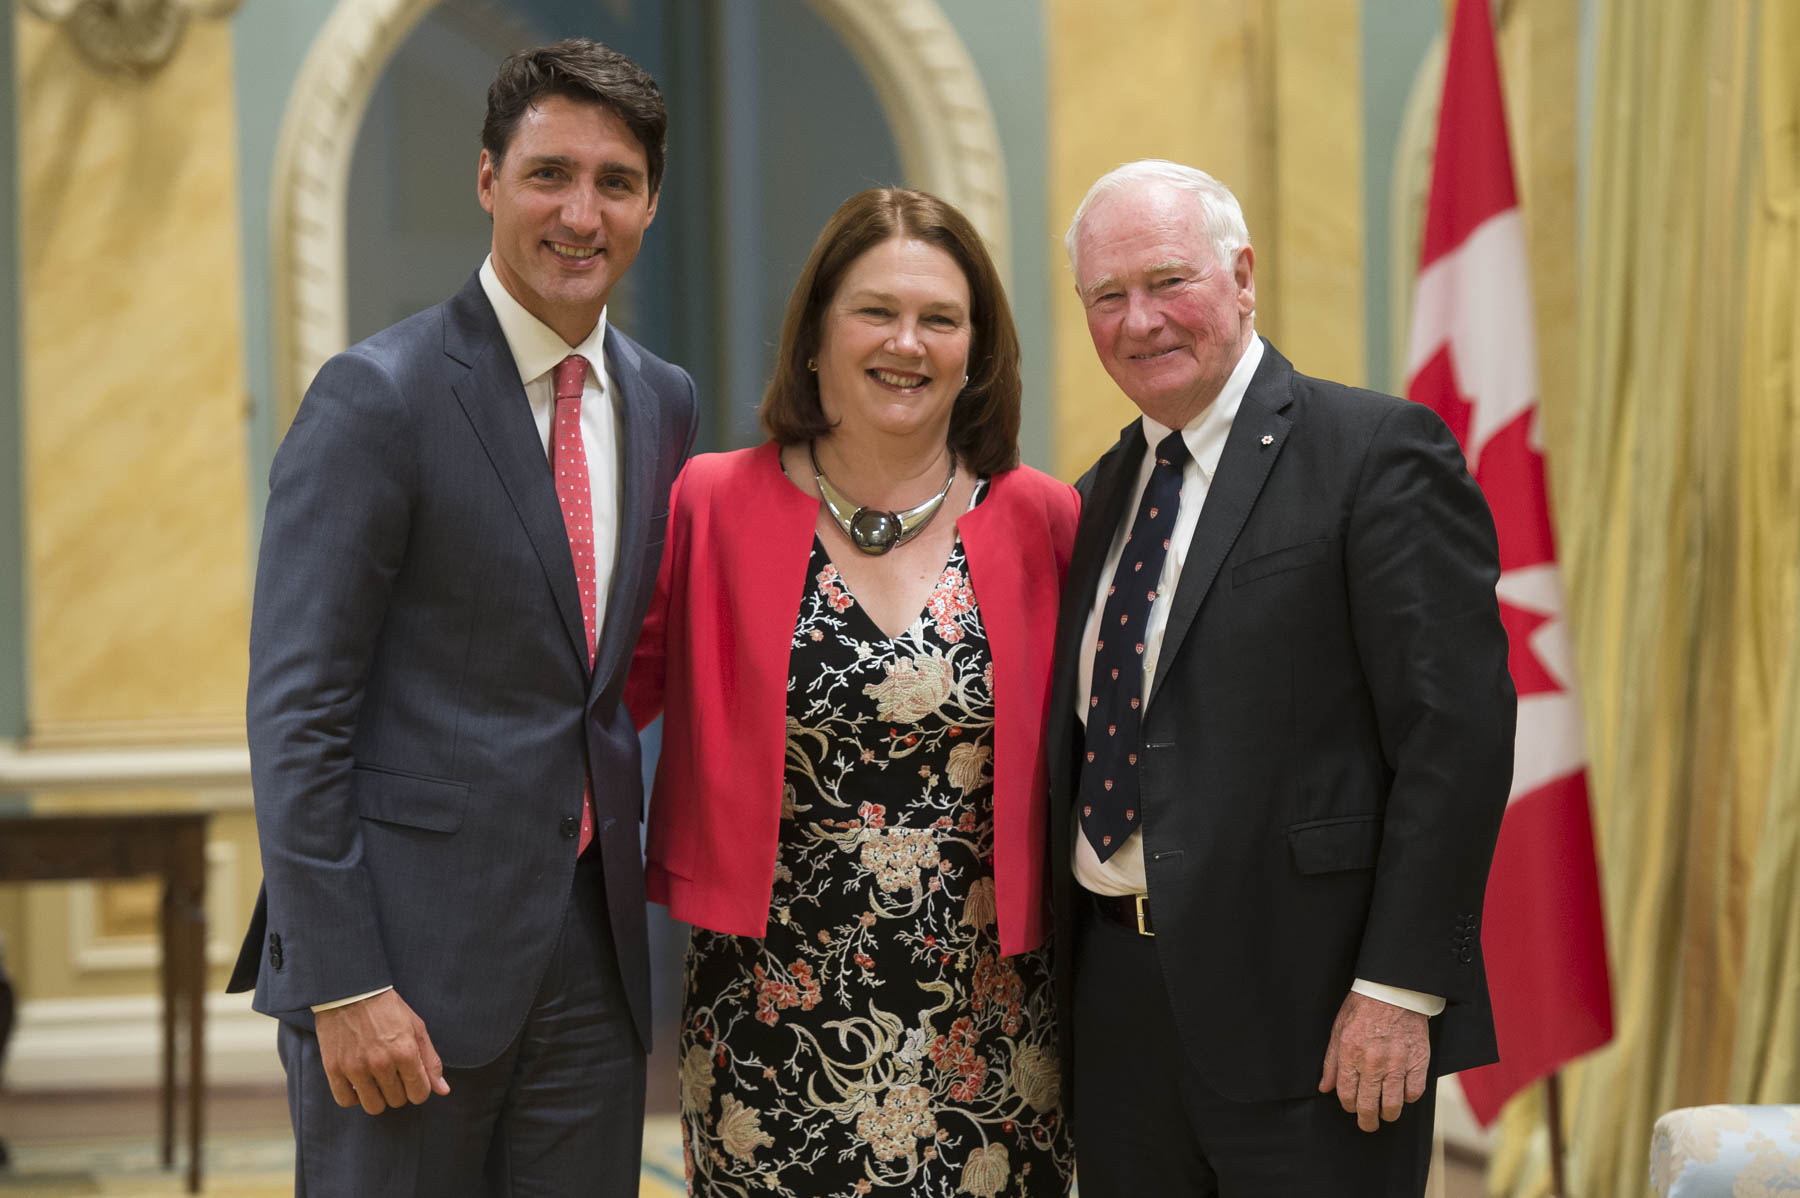 Jane Philpott, former Minister of Health, became Minister of Indigenous Services.